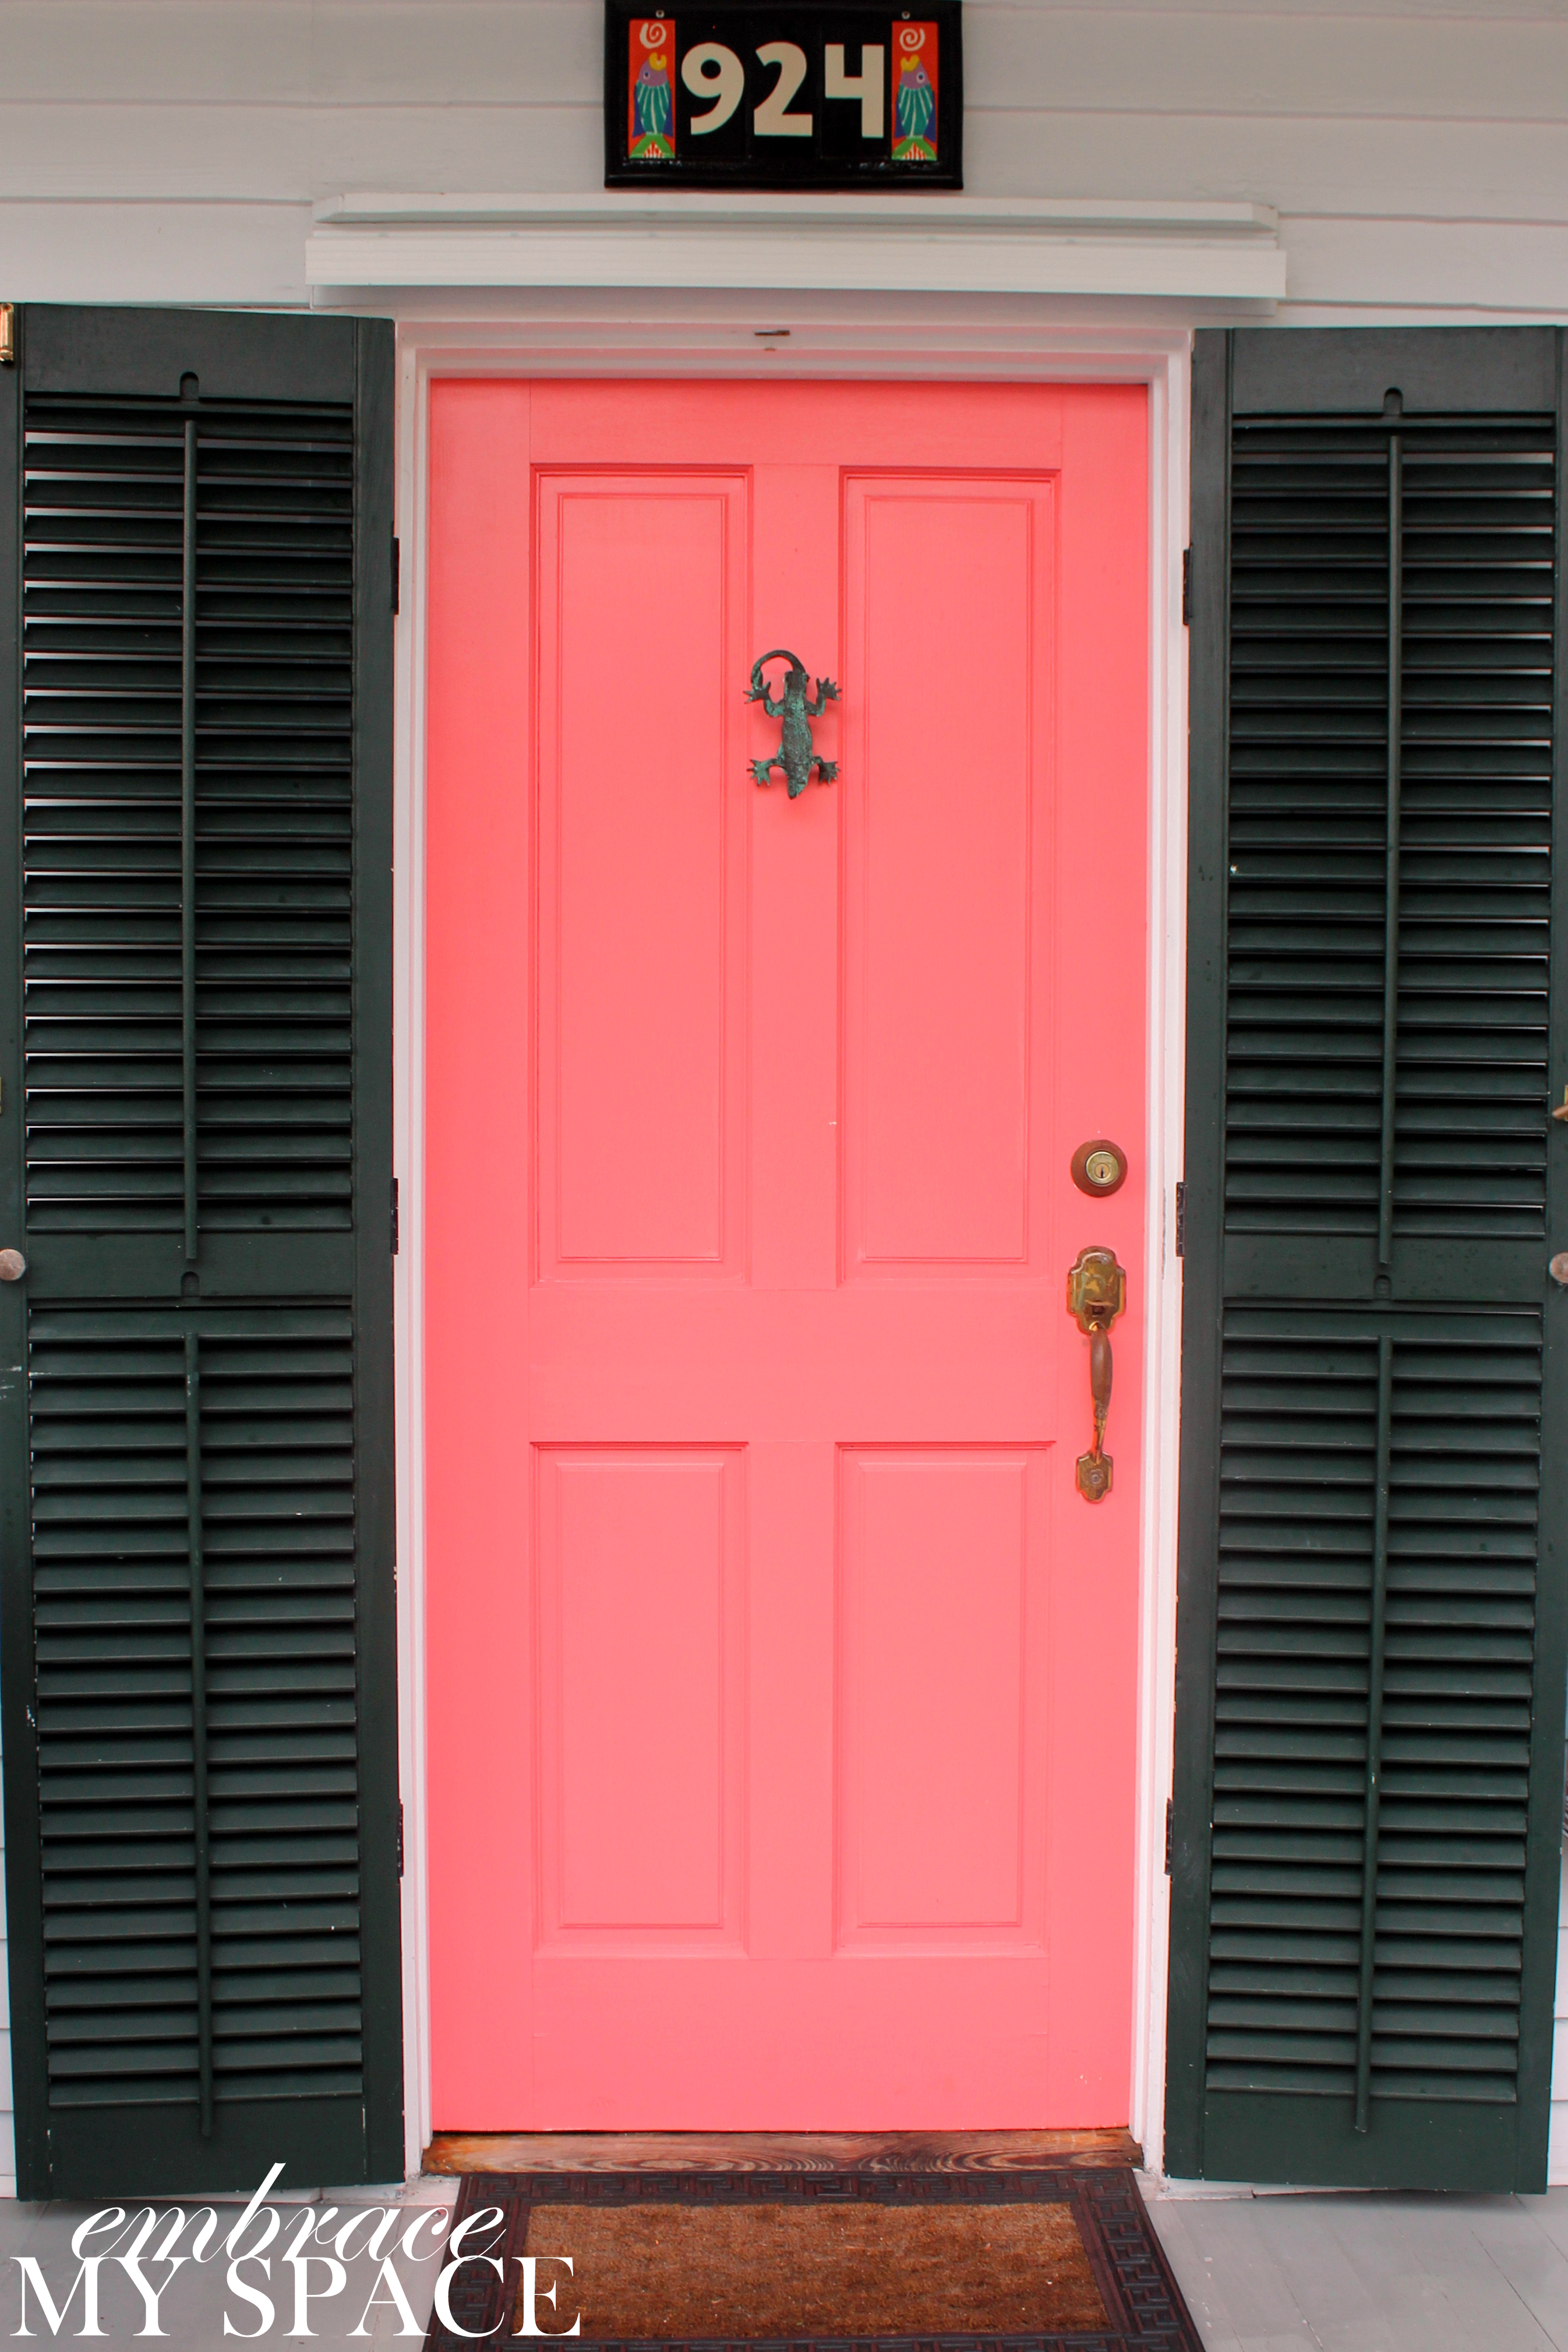 4038 #BB1014 OF COLOR: Finally My Favorite Style Doors Painted In All Colors  picture/photo Different Color Front Doors 47092692